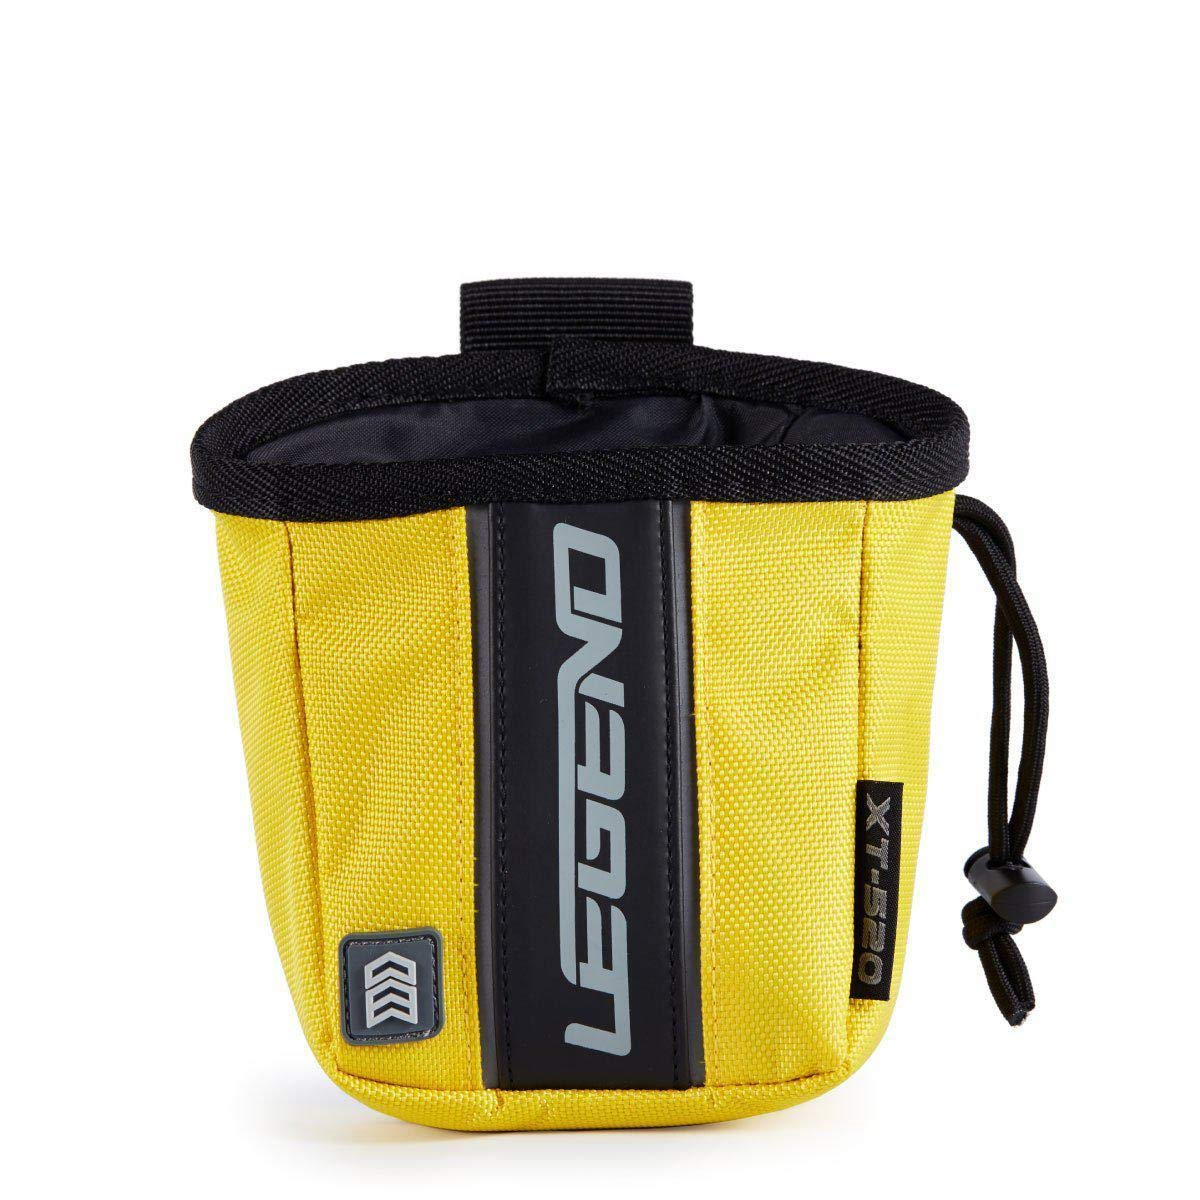 Legend Archery Release Aids Pouch Bag with Belt Loop Draw String and Zipped Pocket XT520 (Yellow) by Legend